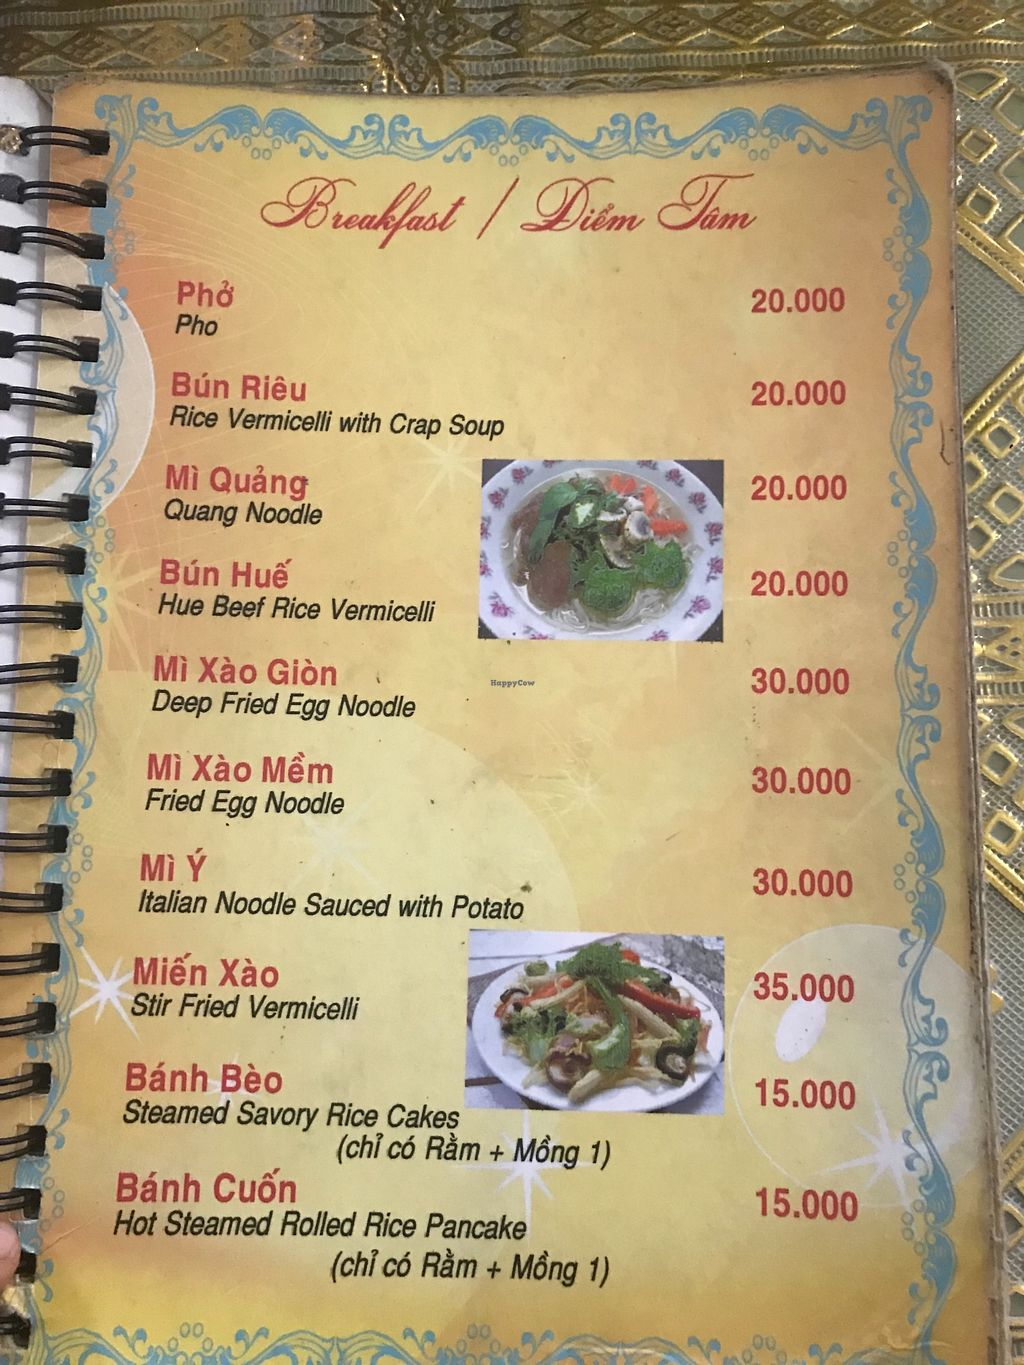 """Photo of Nha Hang Chay  by <a href=""""/members/profile/Avgi"""">Avgi</a> <br/>Menu 2 <br/> February 9, 2018  - <a href='/contact/abuse/image/111577/356679'>Report</a>"""